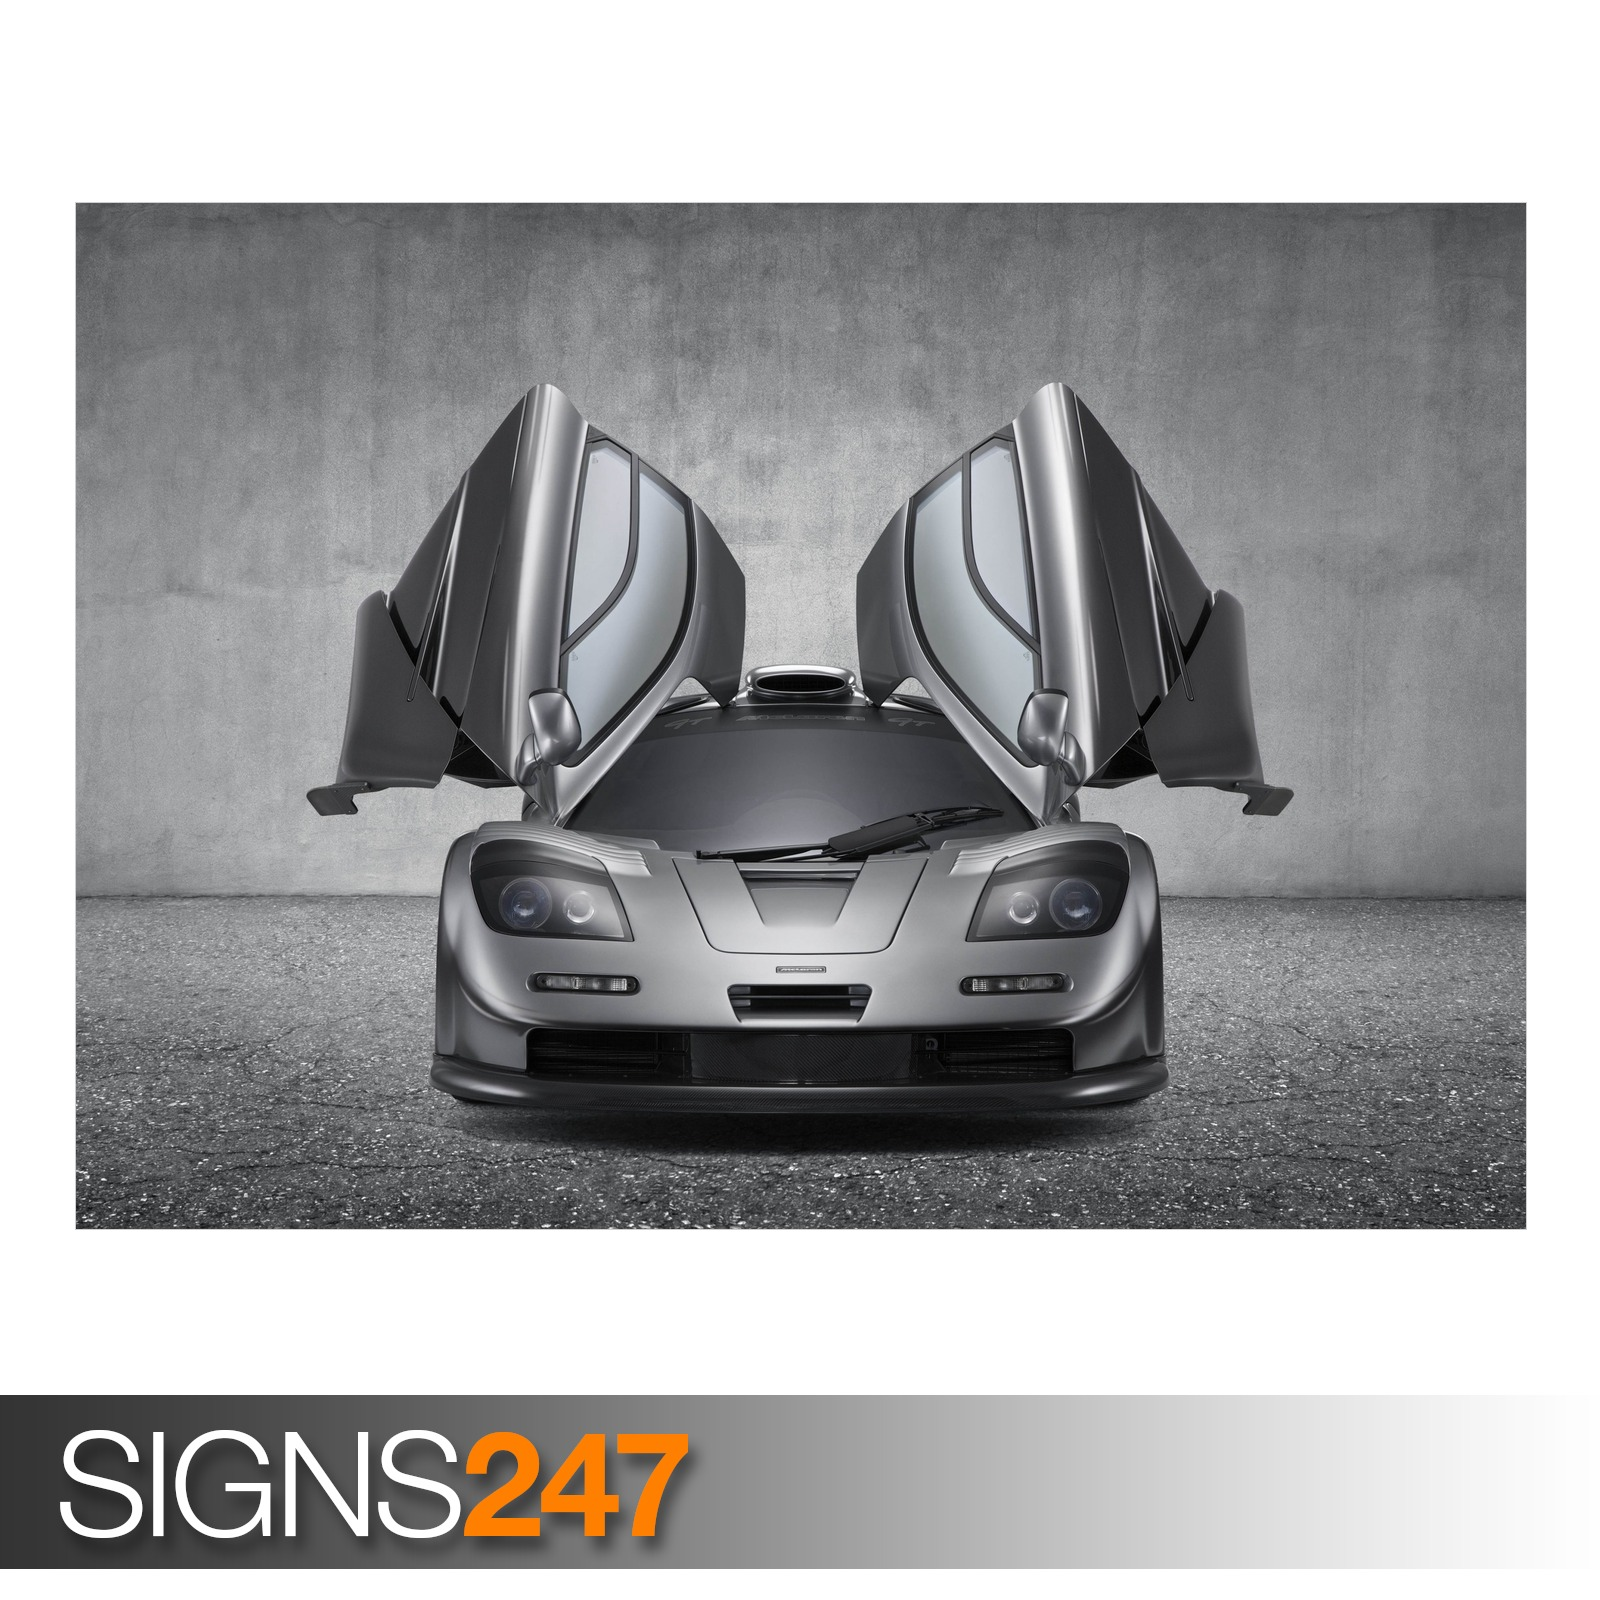 MCLAREN F1 GT SUPERCAR (AD746) CAR POSTER - Photo Poster Print Art * All Sizes